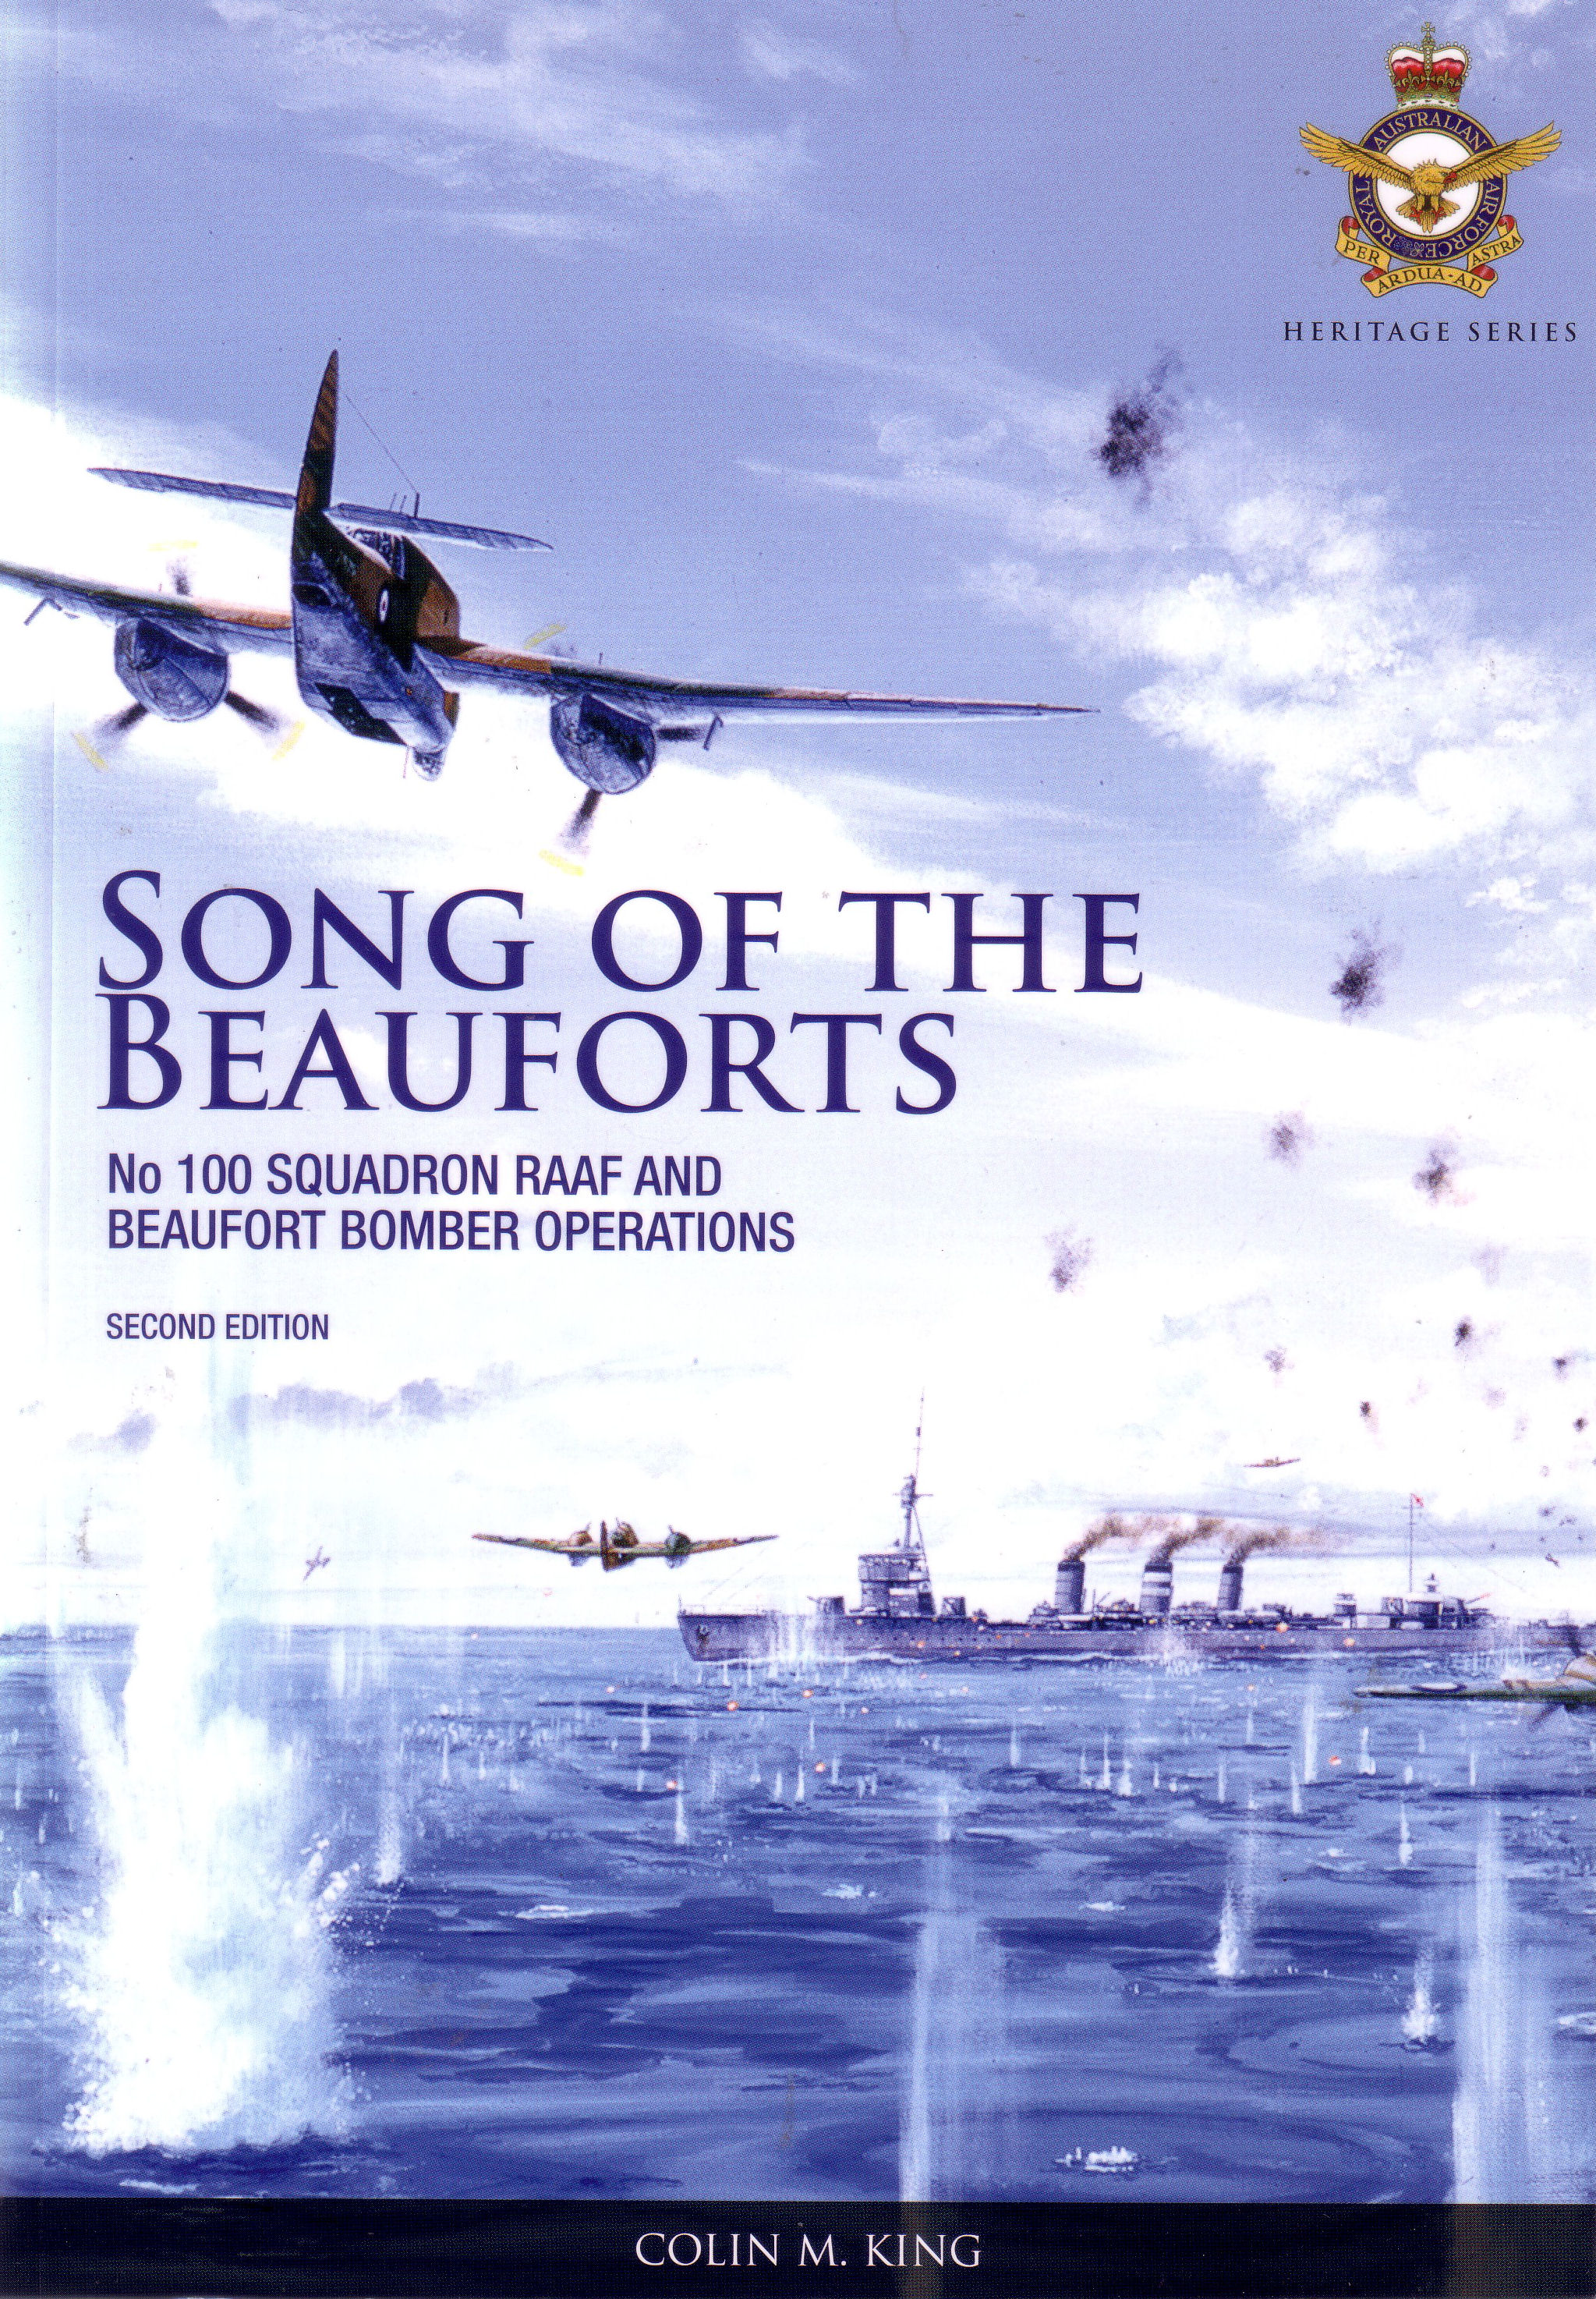 SONGS OF THE BEAUFORTS